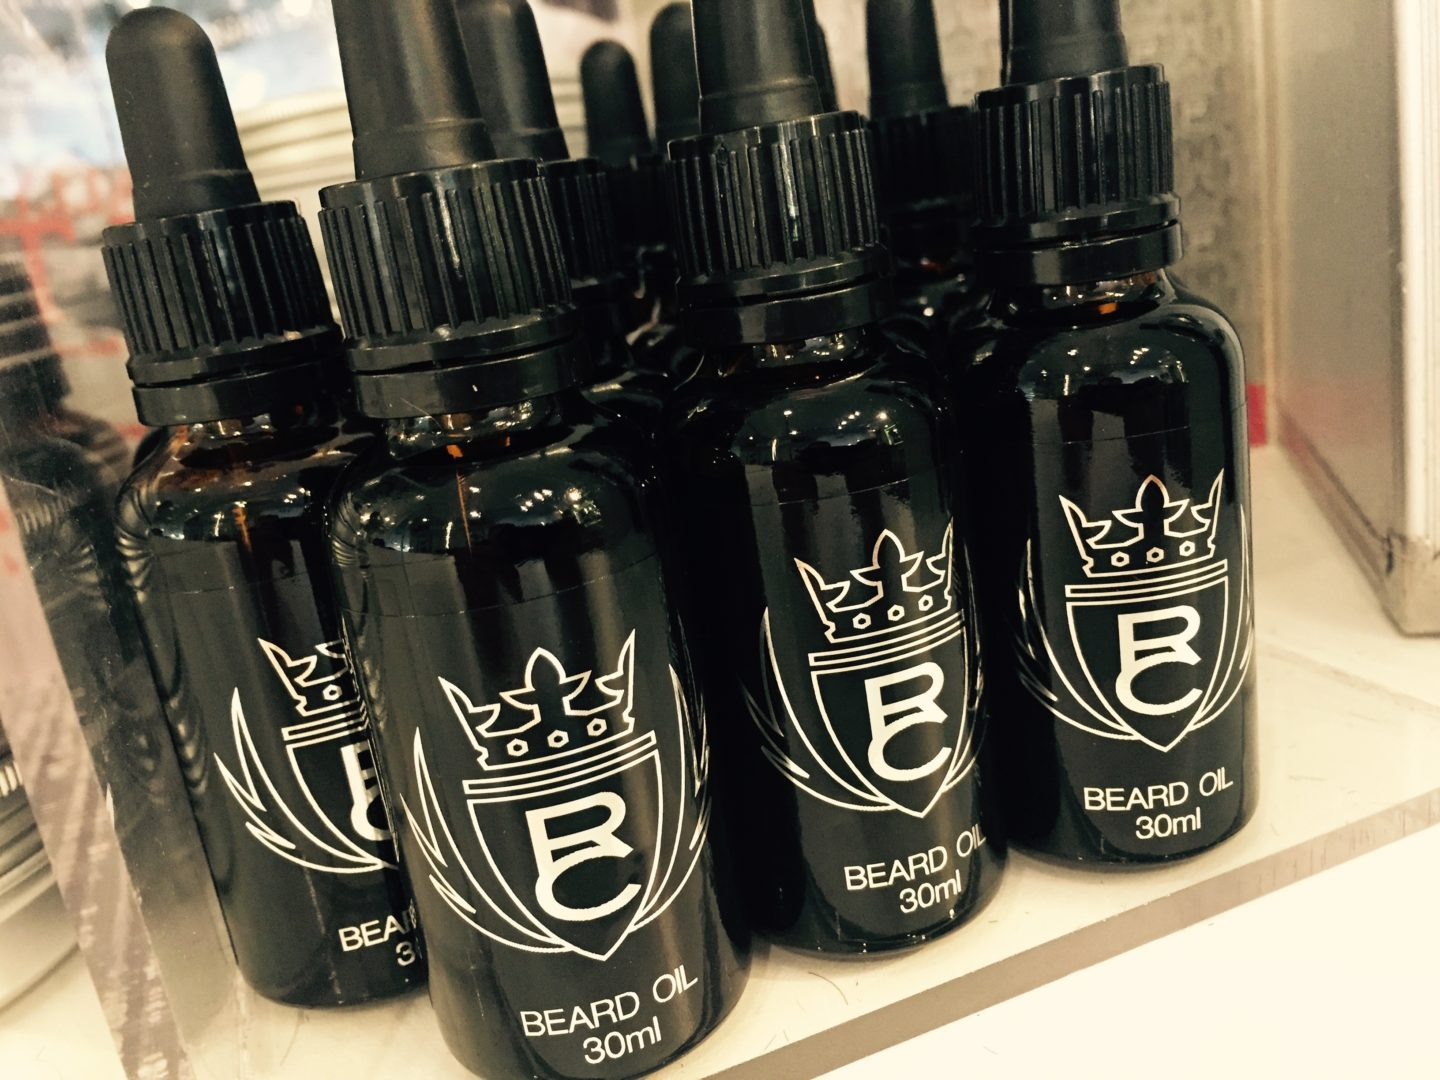 rc beard oil 30ml bleu noir ross charles hairdressers in york. Black Bedroom Furniture Sets. Home Design Ideas